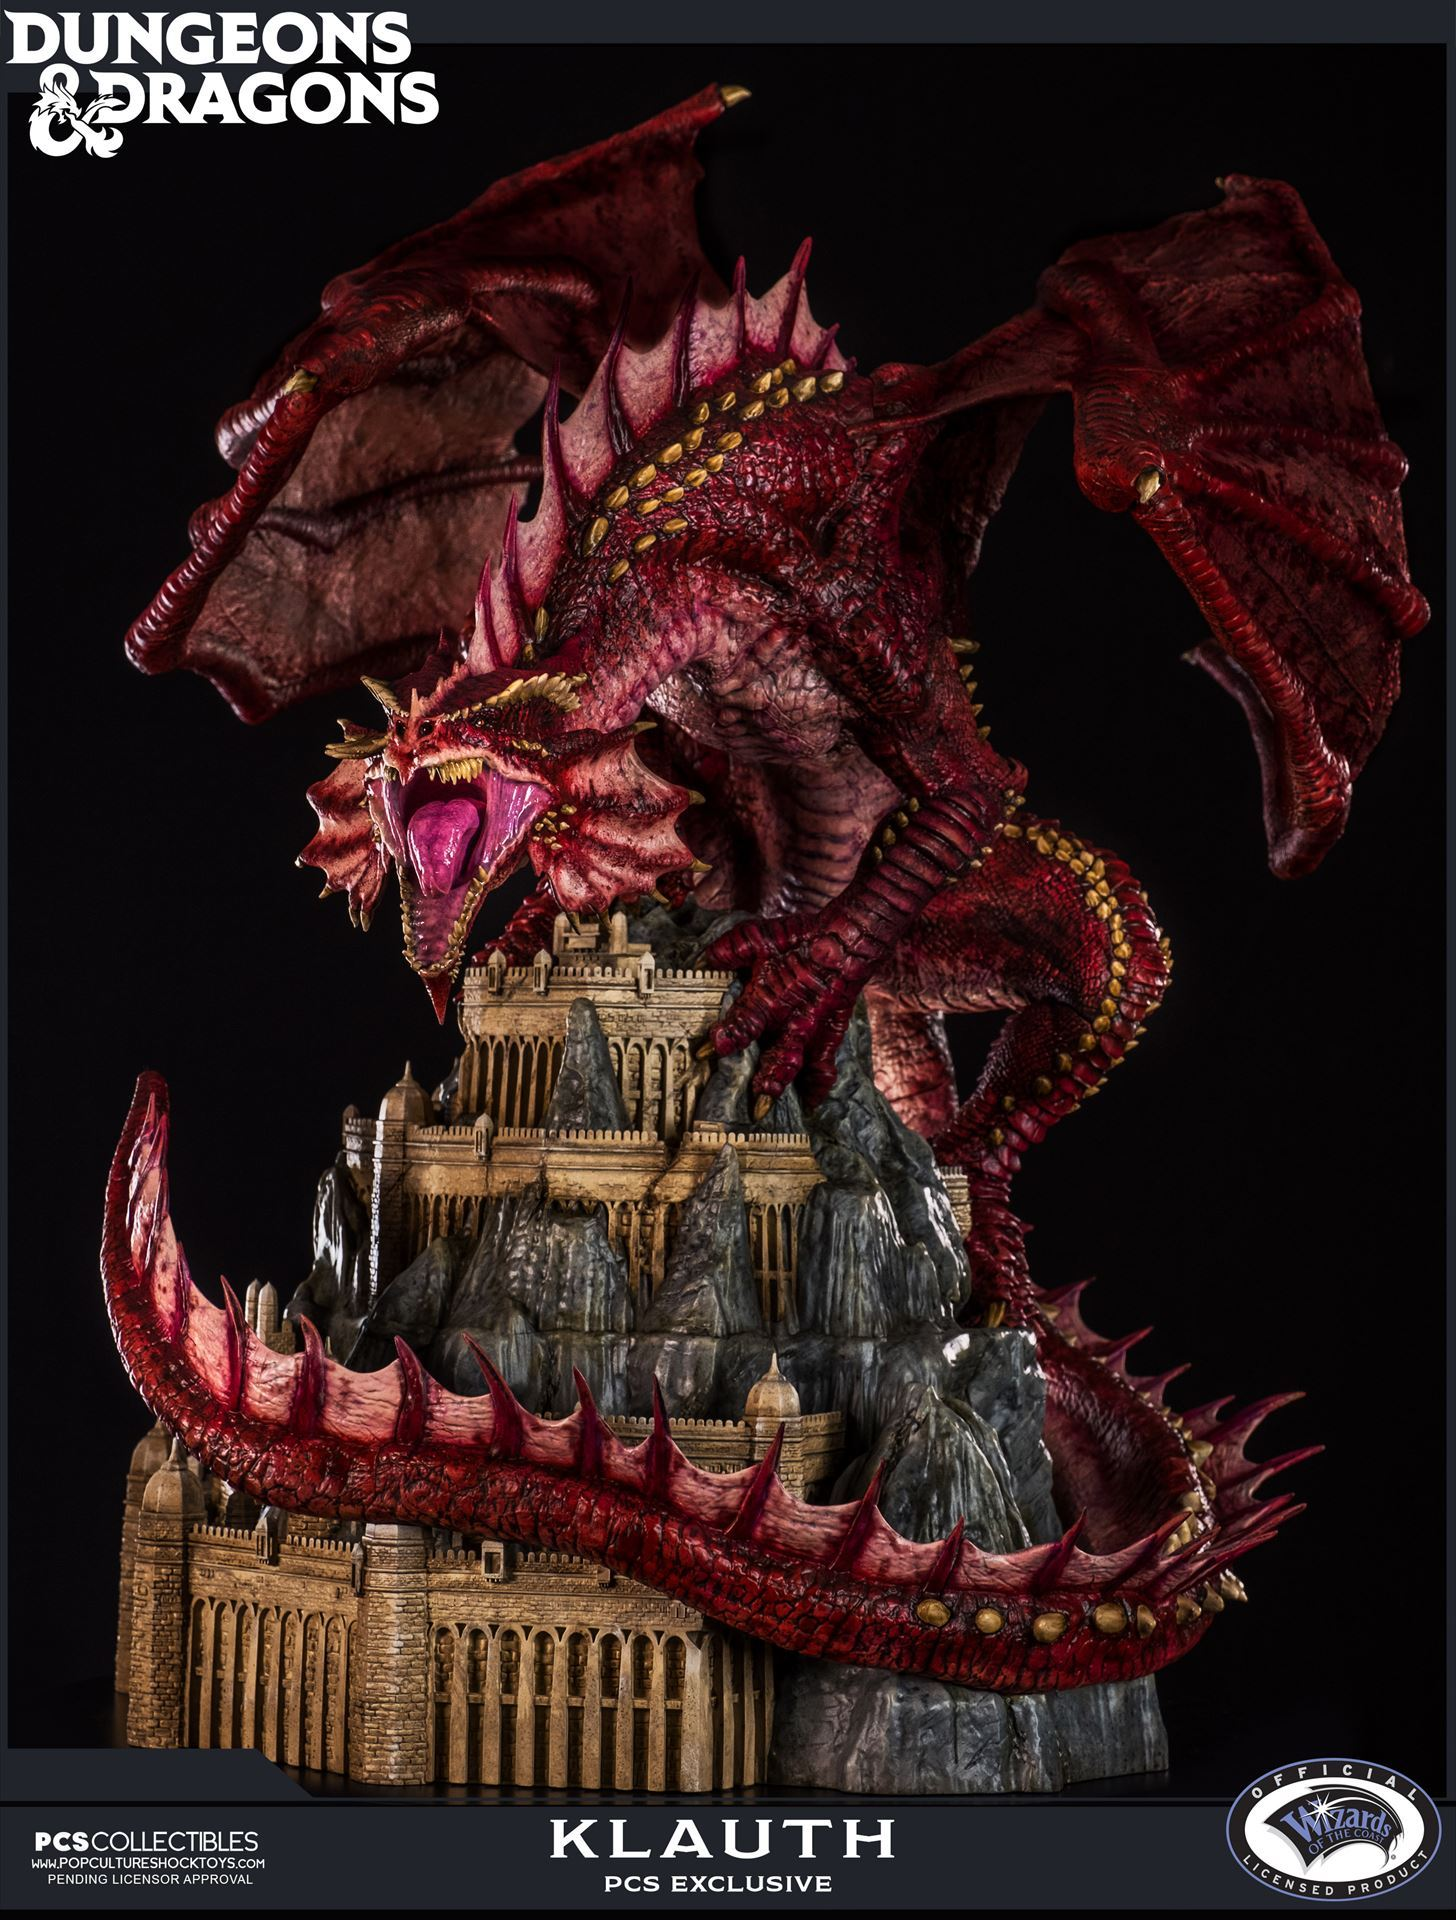 Dungeons and Dragons Klauth the Red Dragon Statue by PCS